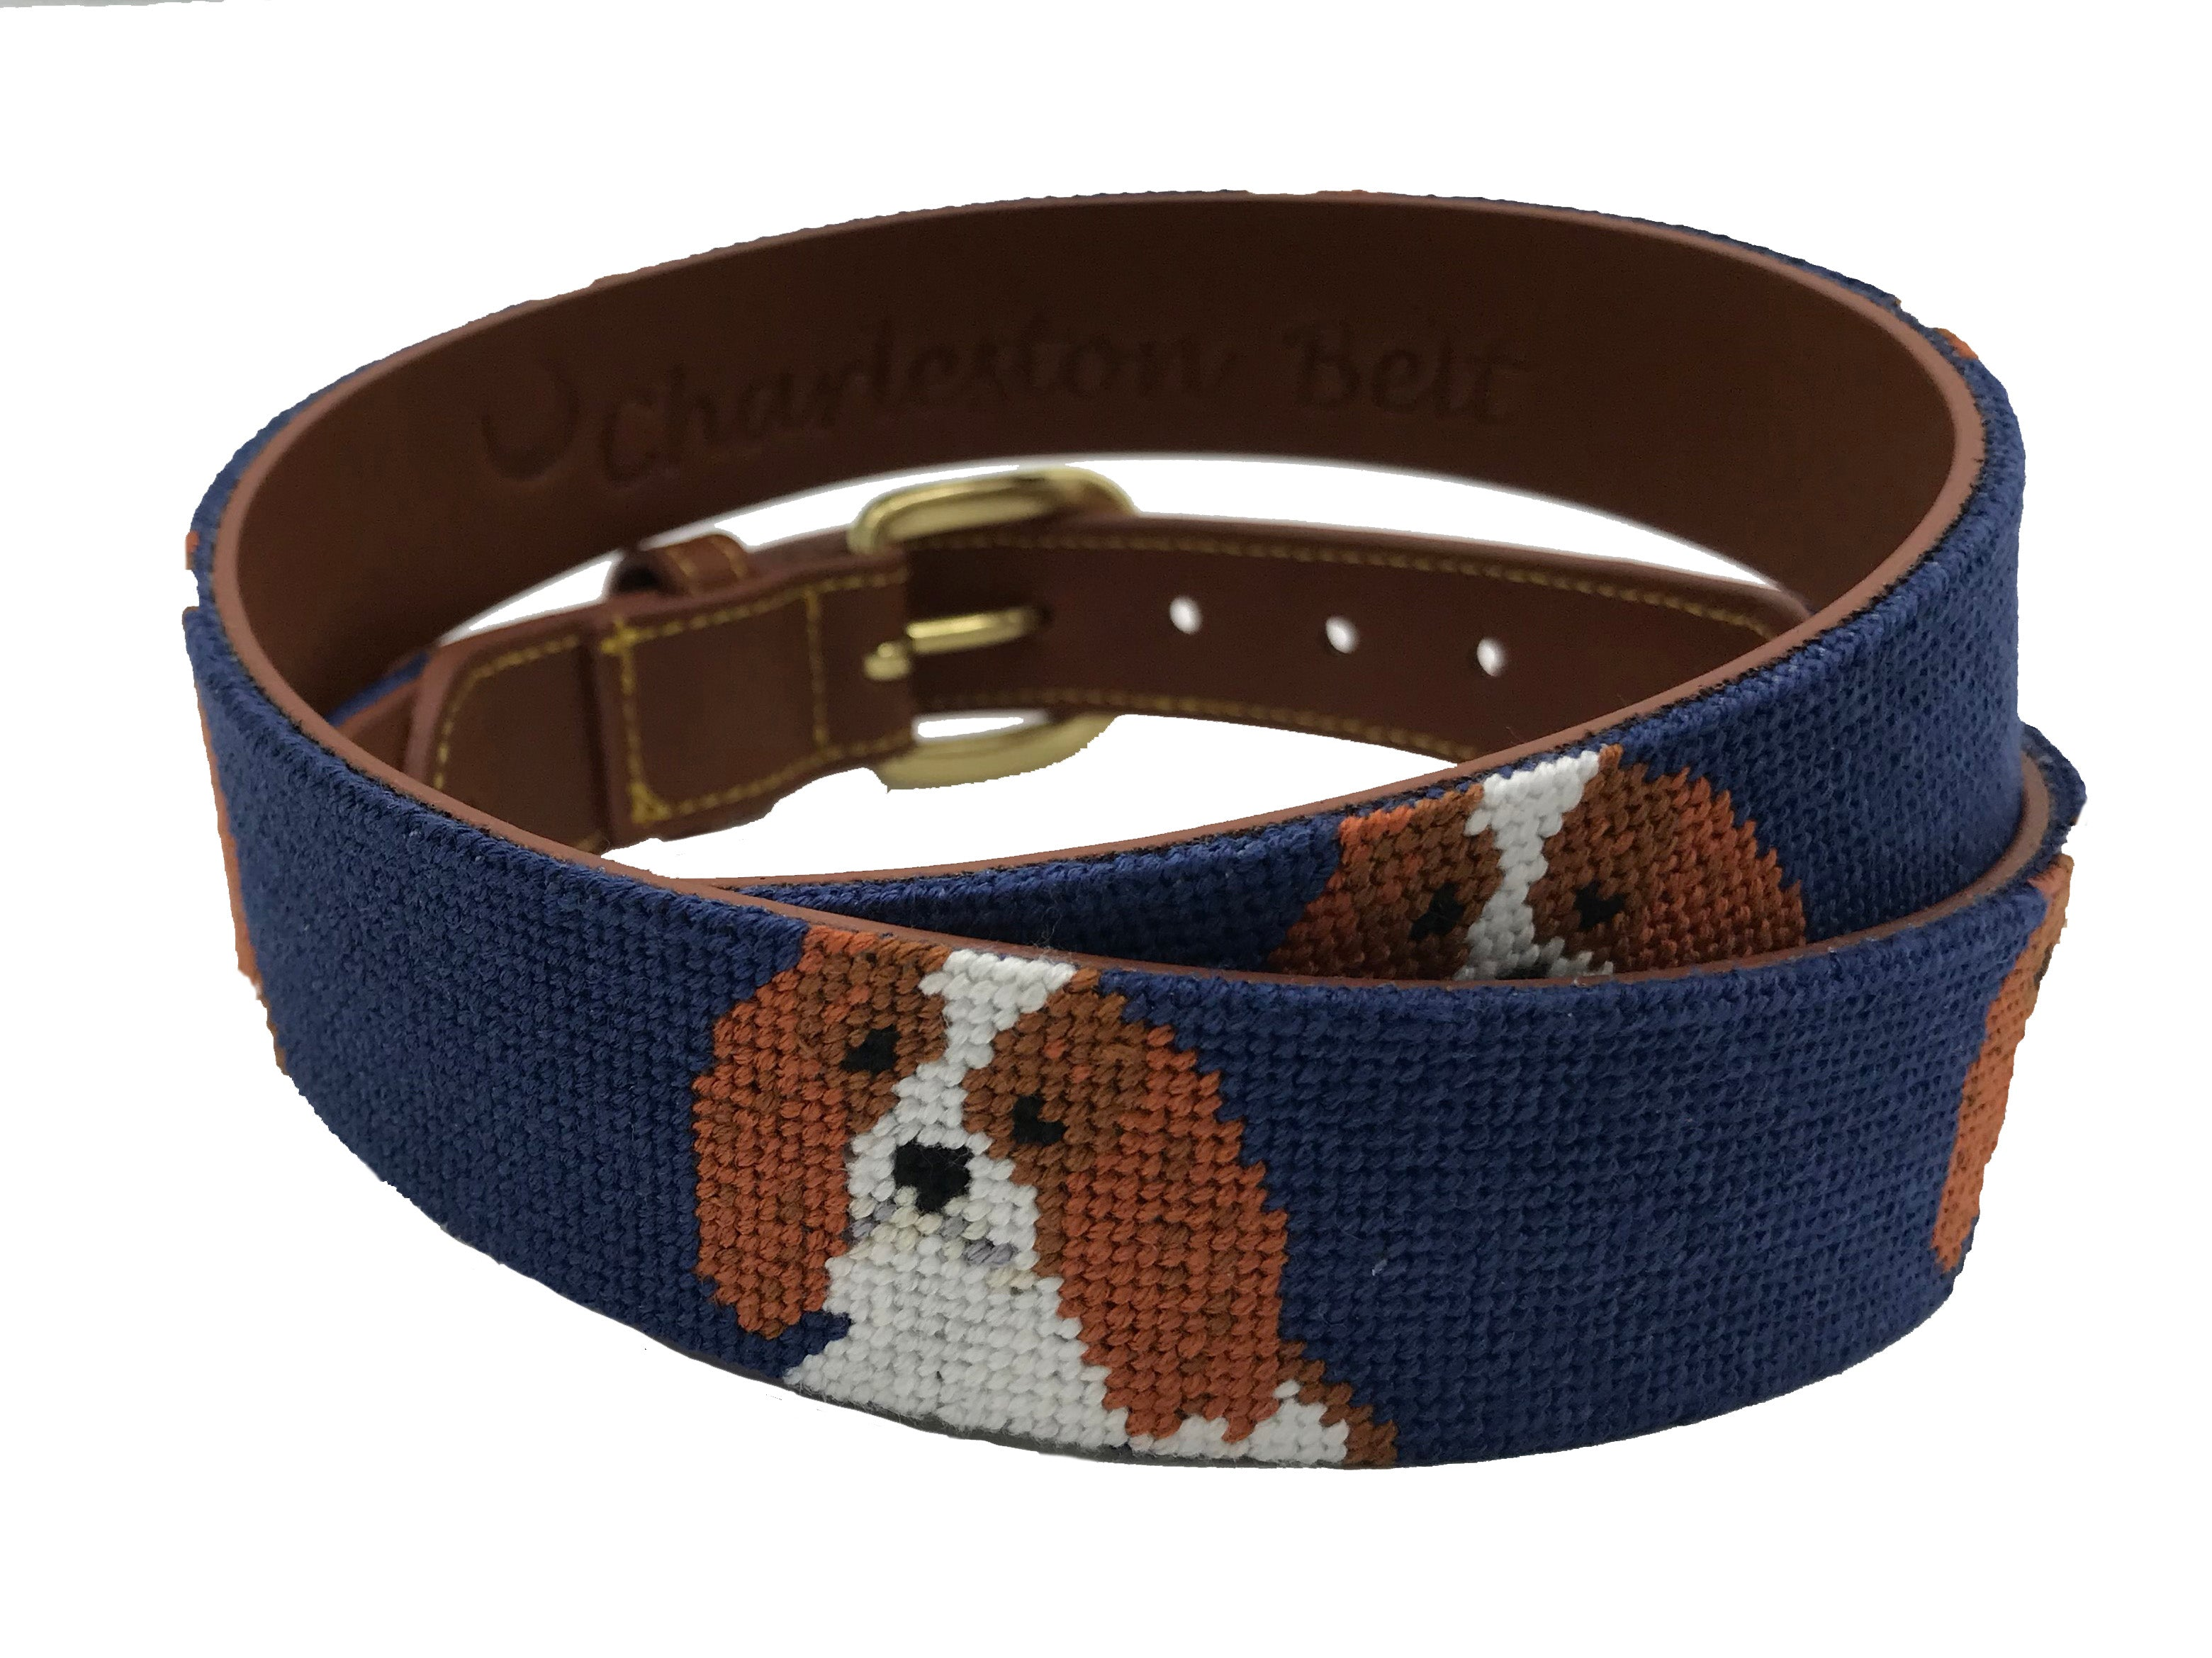 hand-stitched needle-point belt Cavalier King Charles Spaniel - charlestonbelt.com